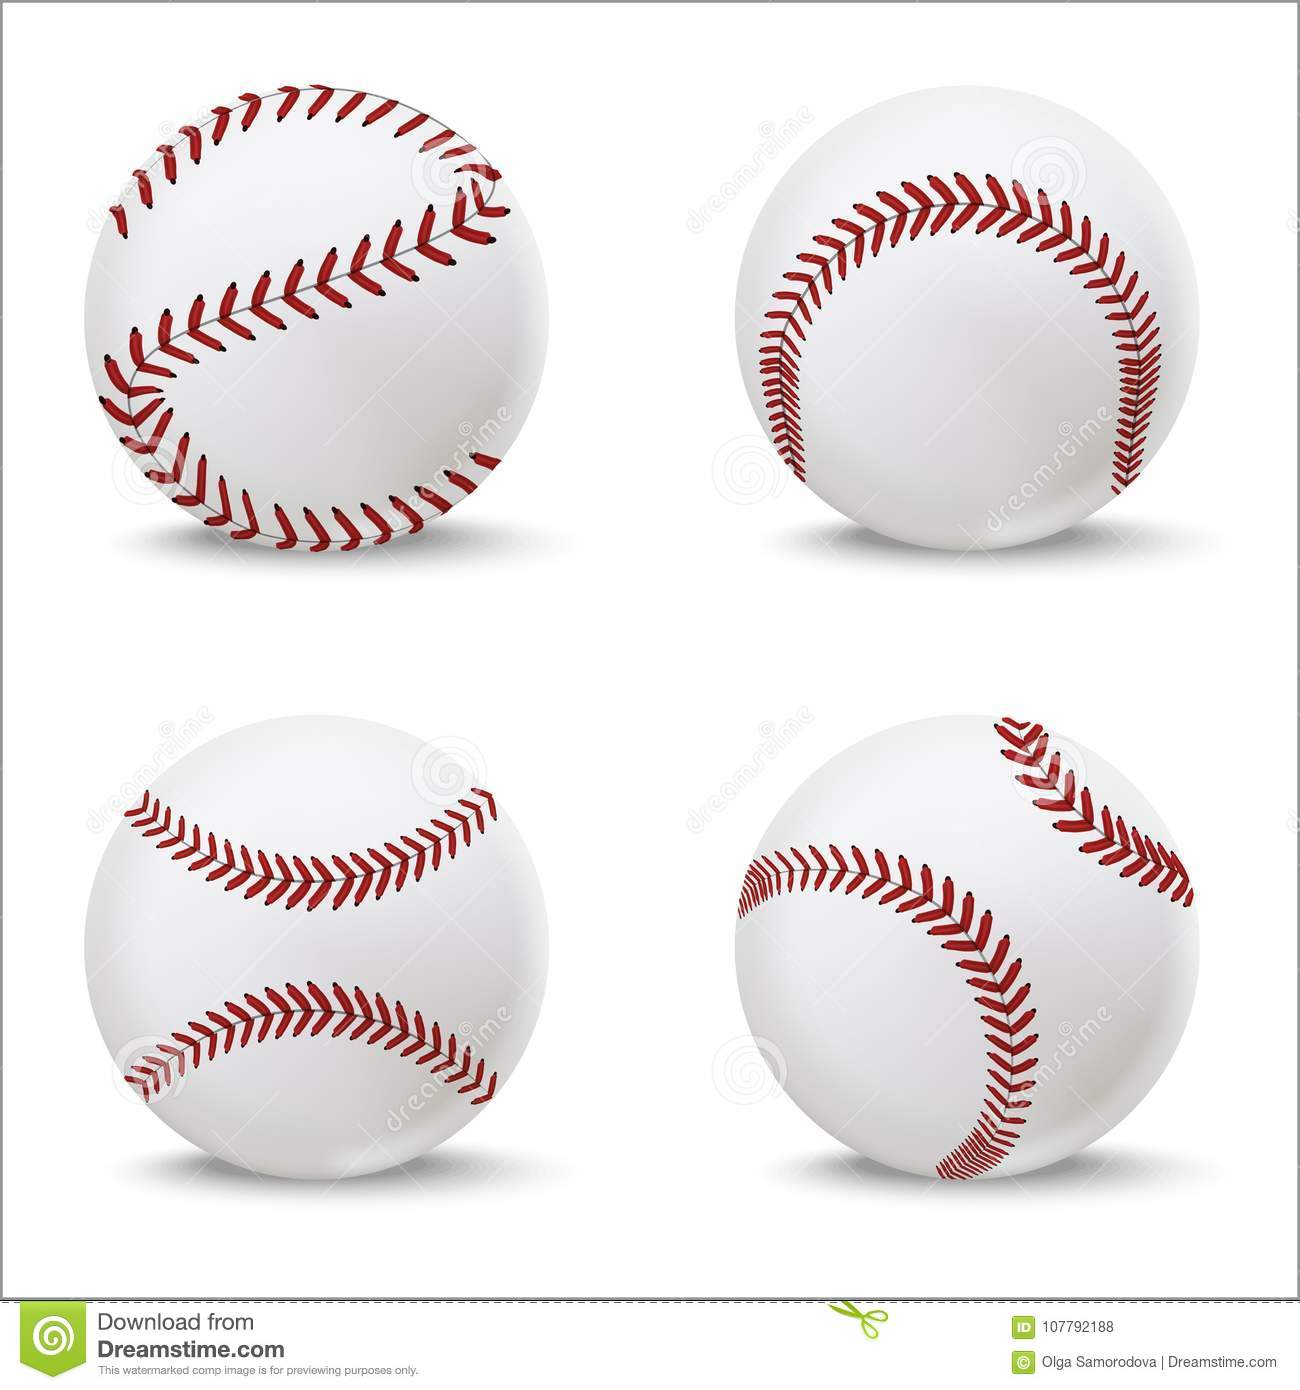 Realistic Detailed 3d Baseball Leather Ball Set. Vector